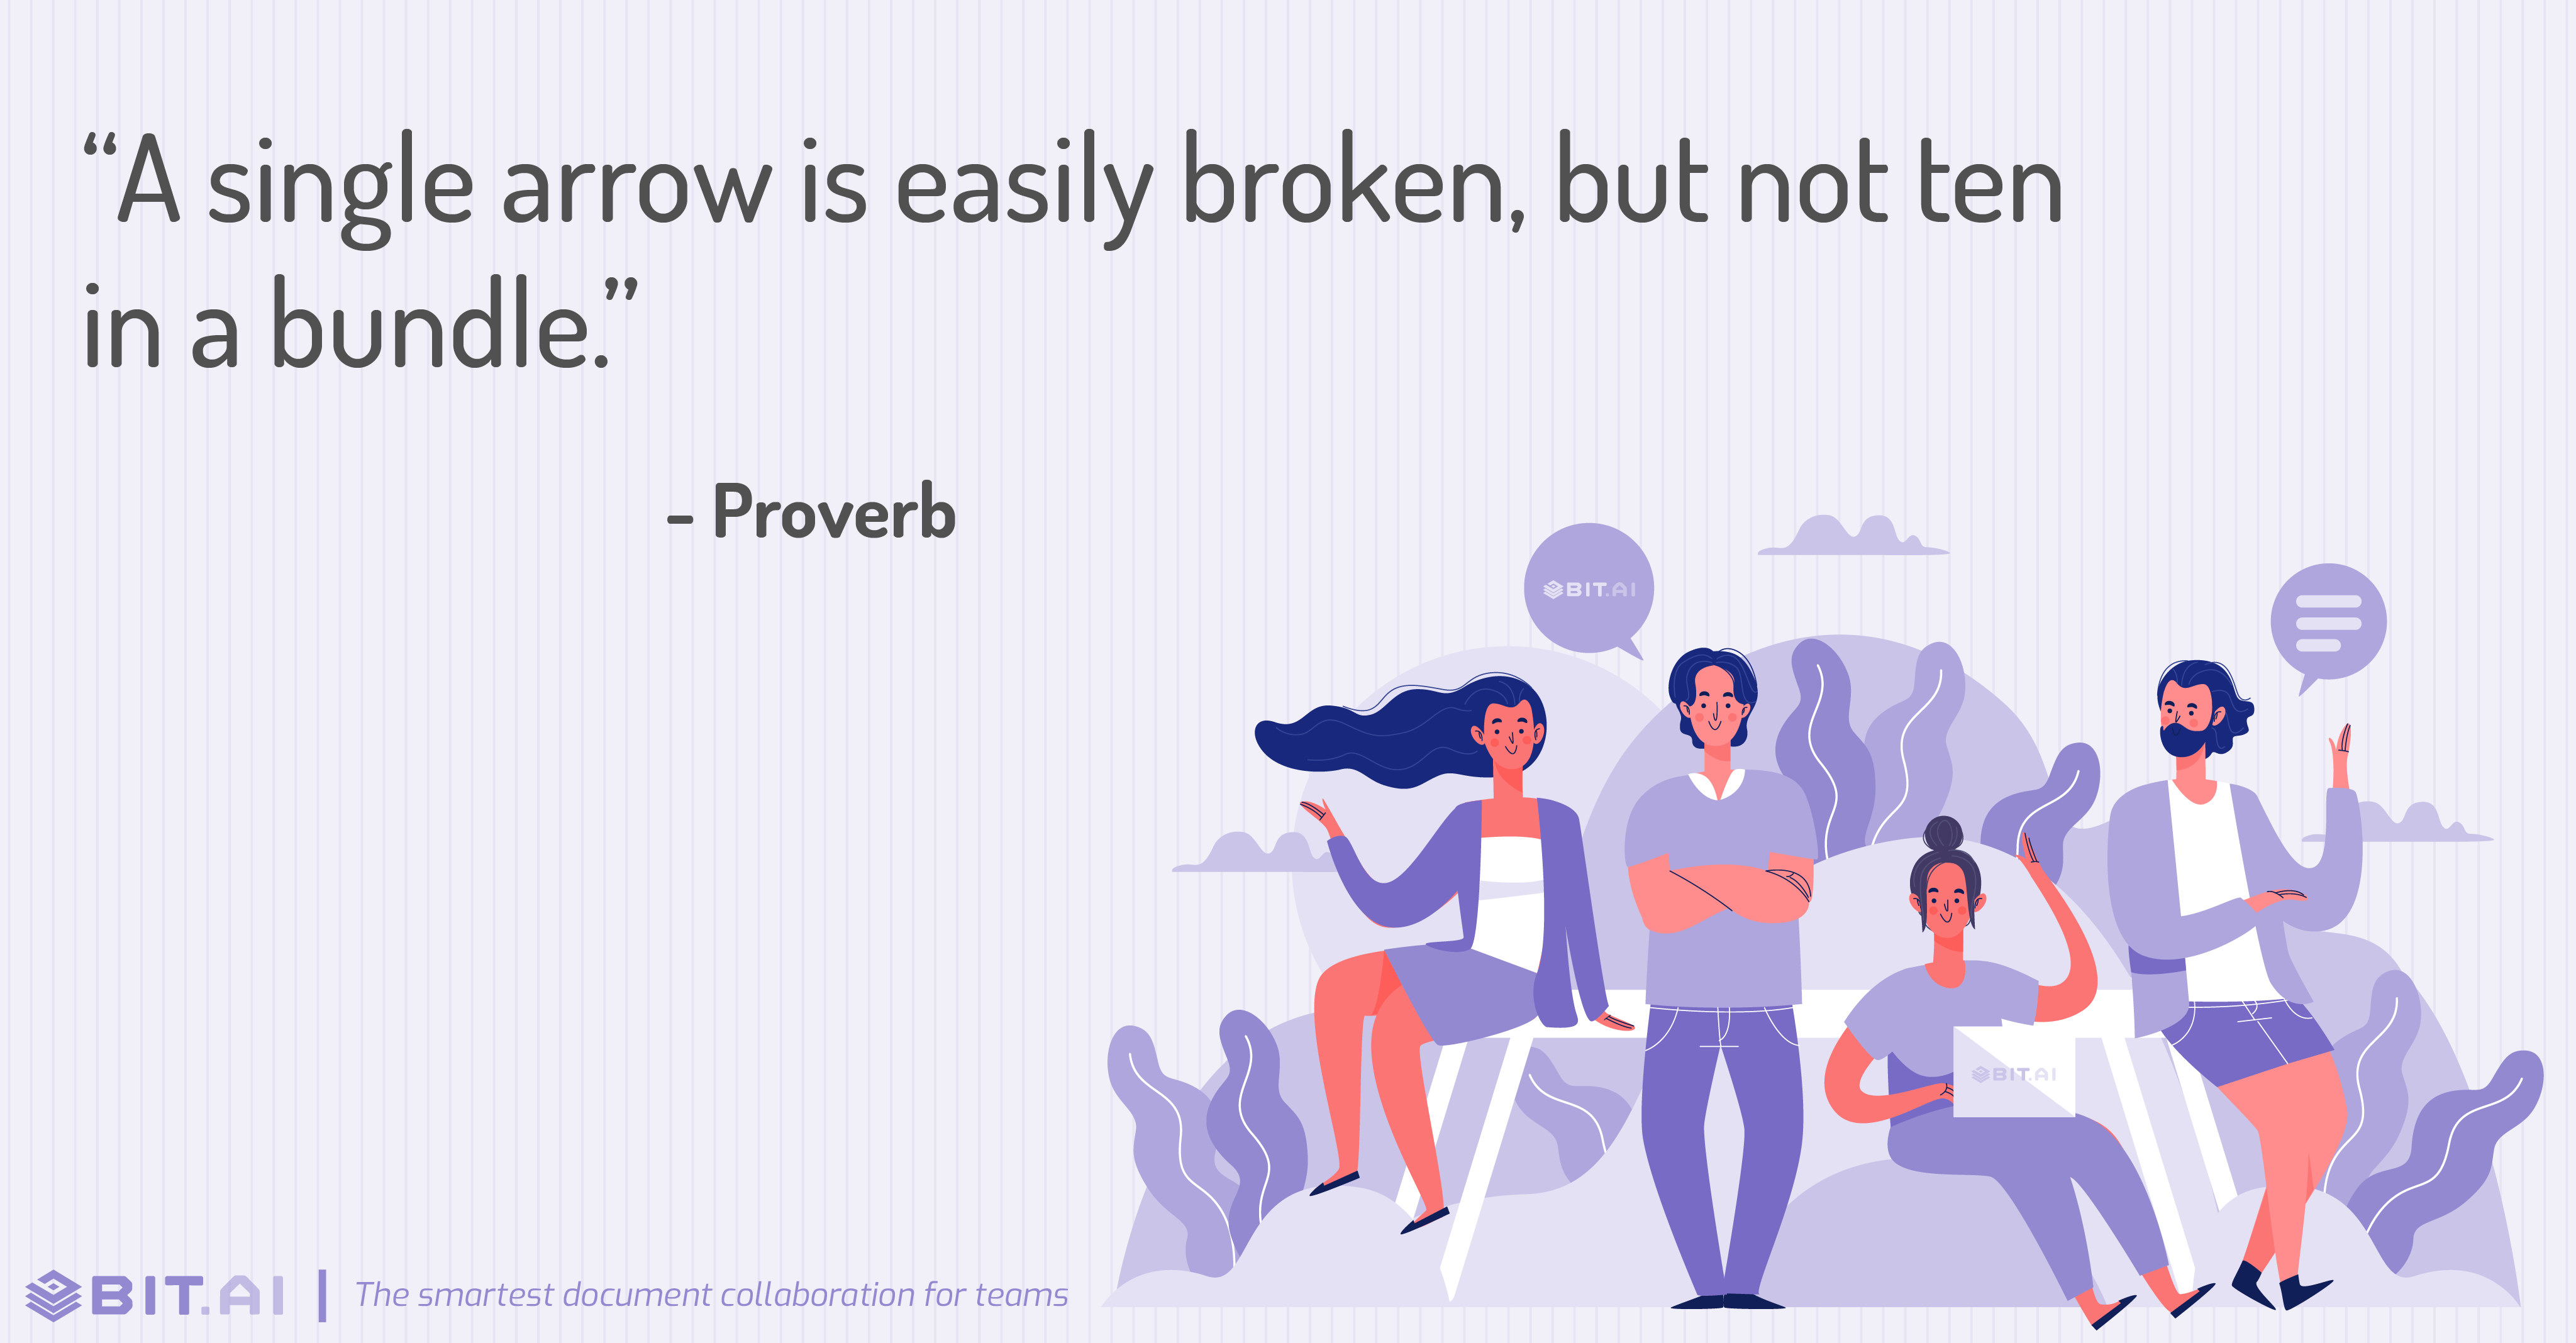 """A single arrow is easily broken, but not ten in a bundle."" - Proverb"